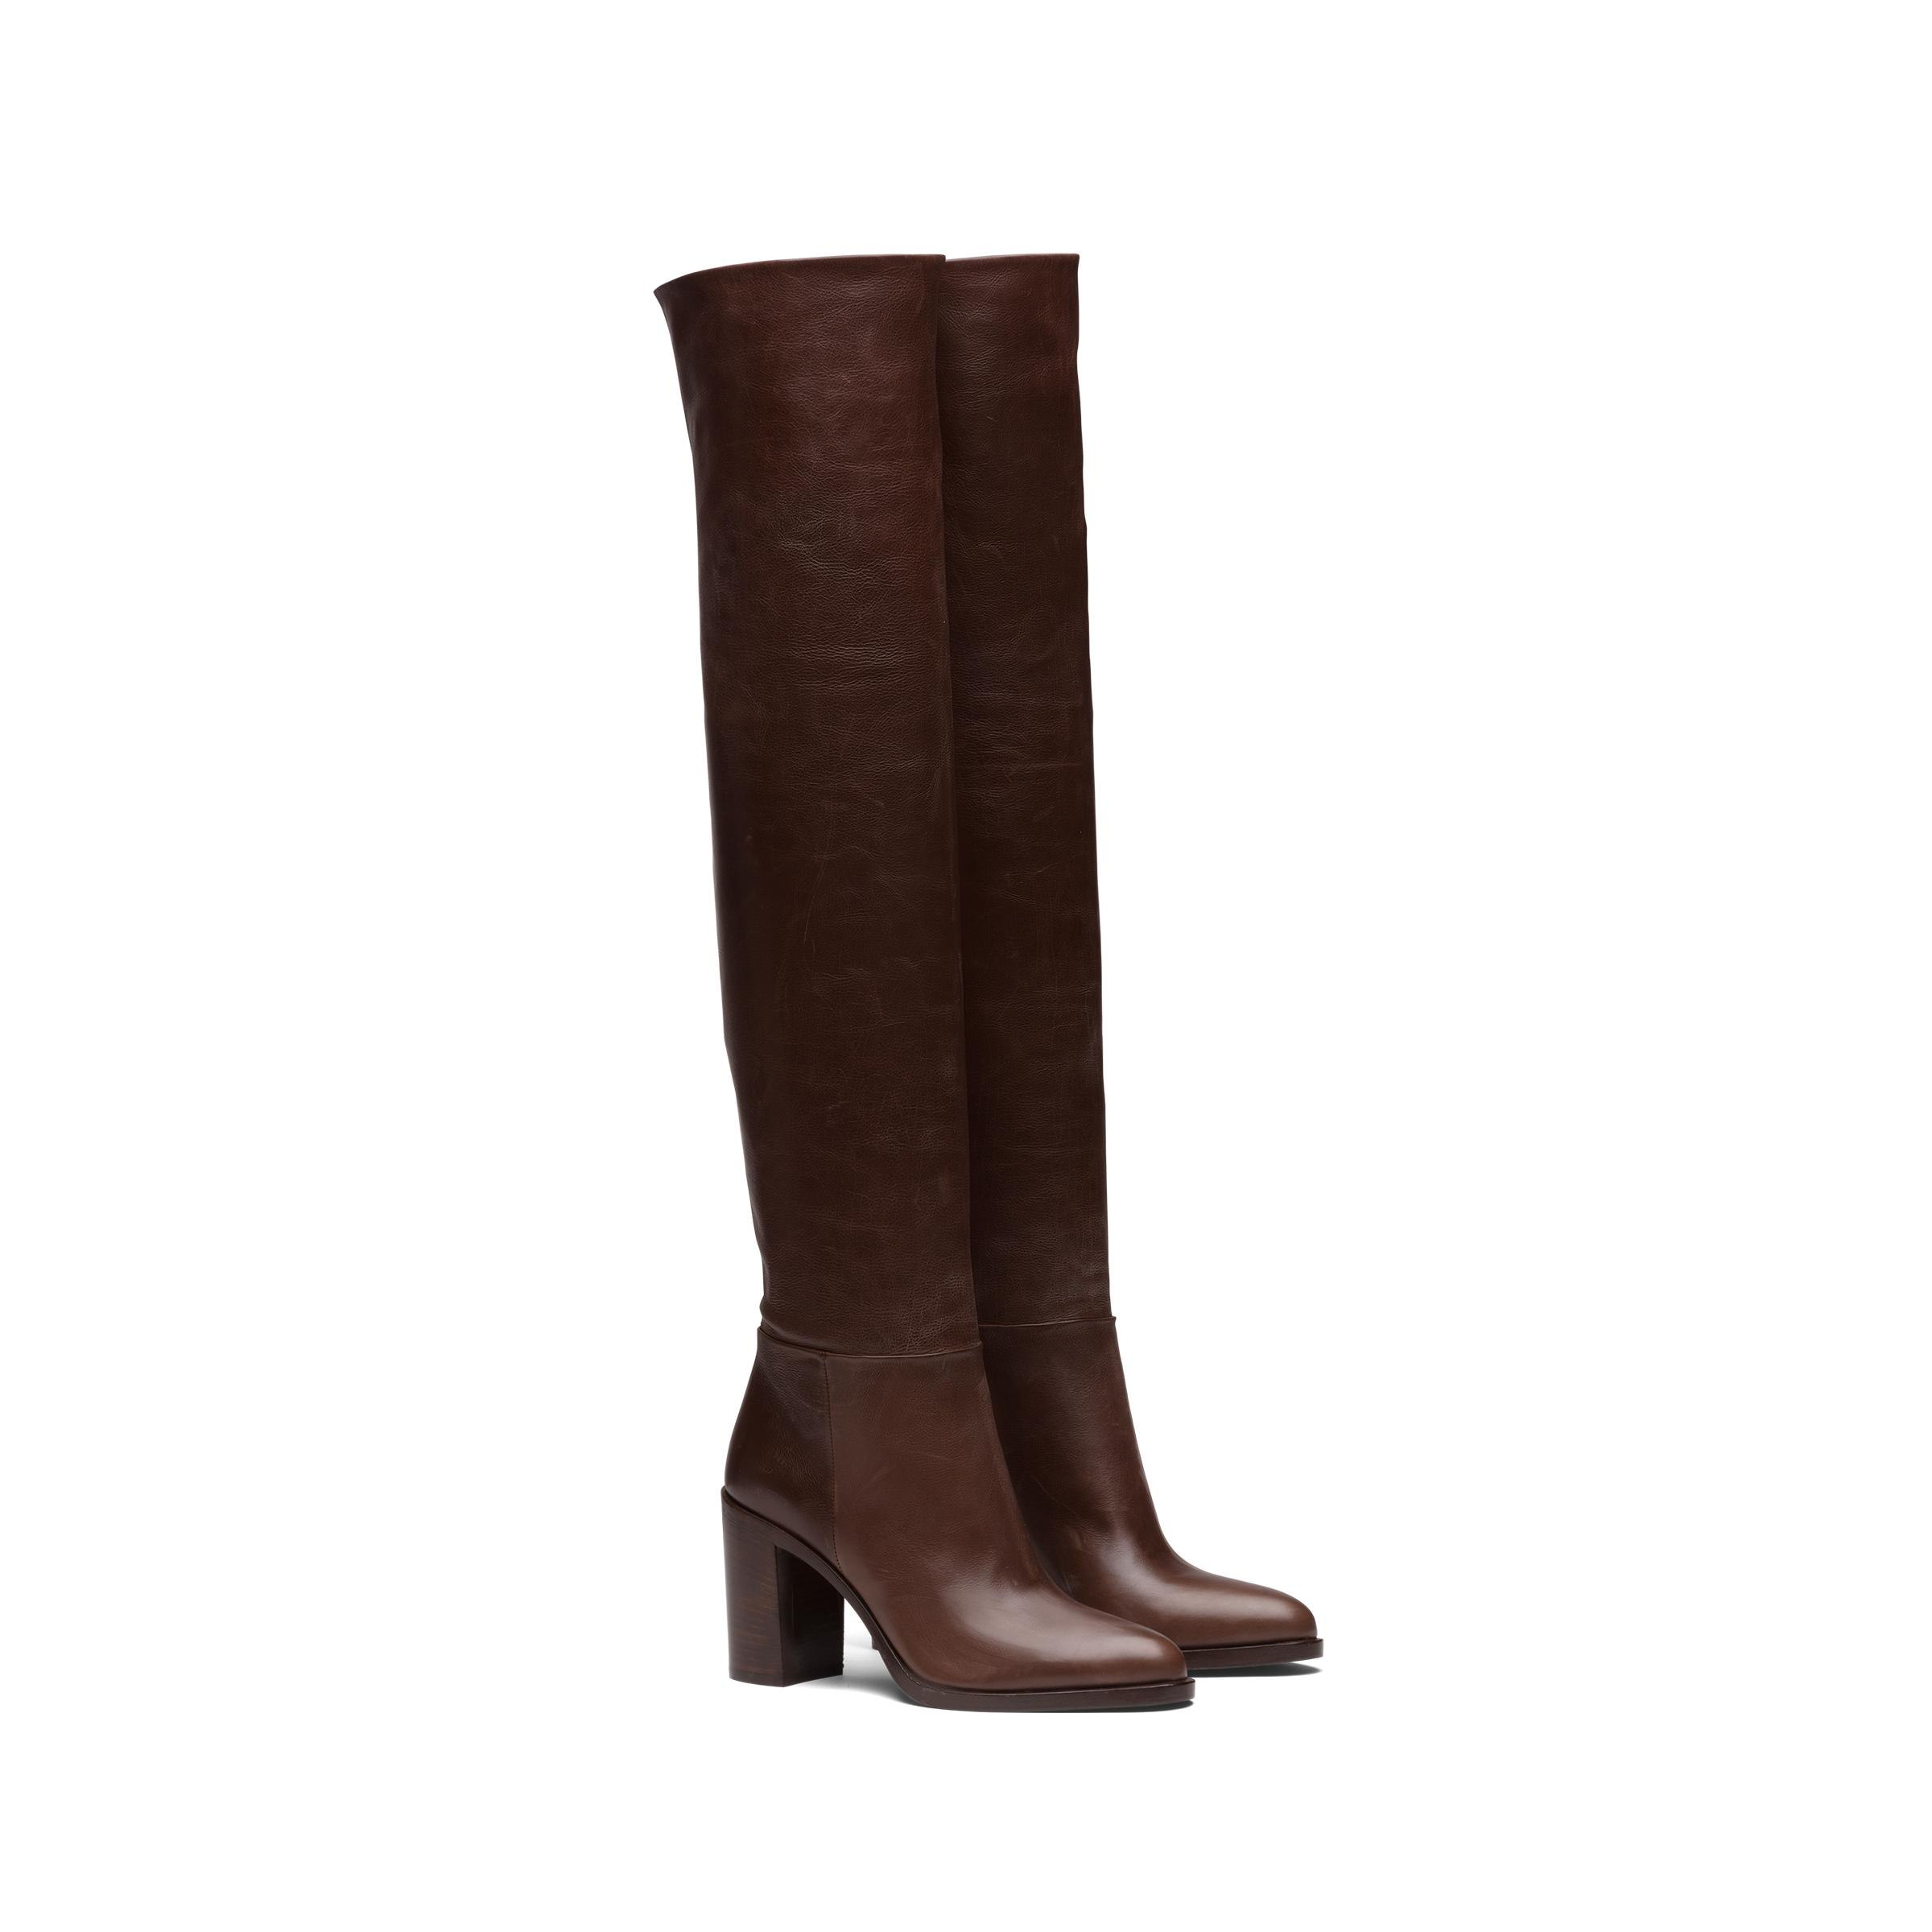 Leather Boots Women Sienna